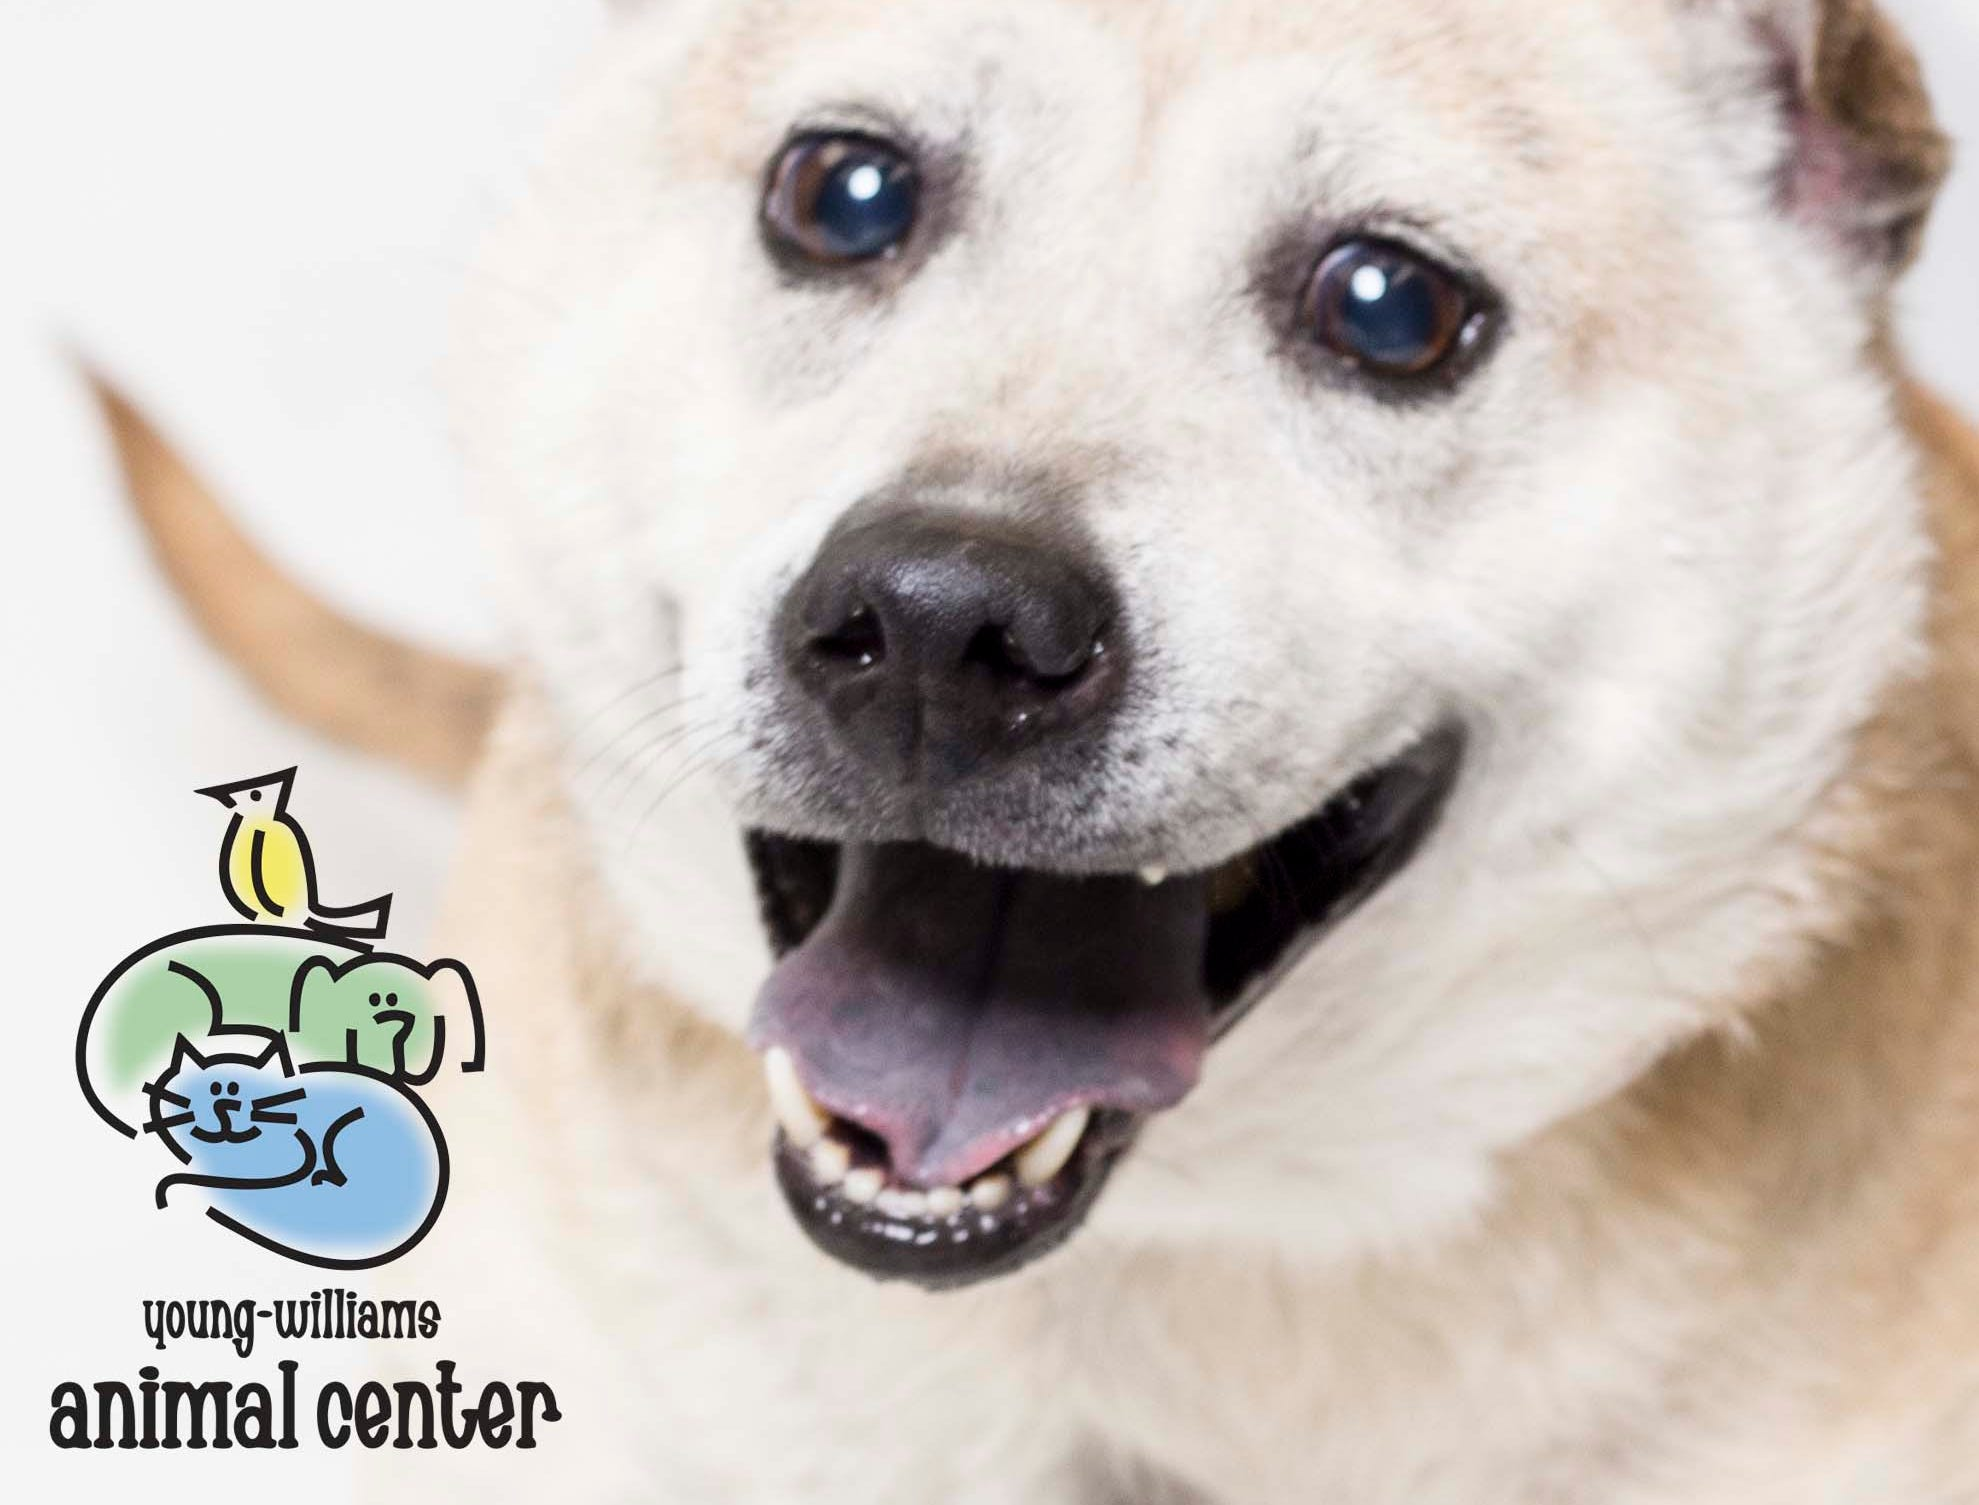 Sunshine is up for adoption at Young-Williams animal center on Thursday, March 21, 2019.